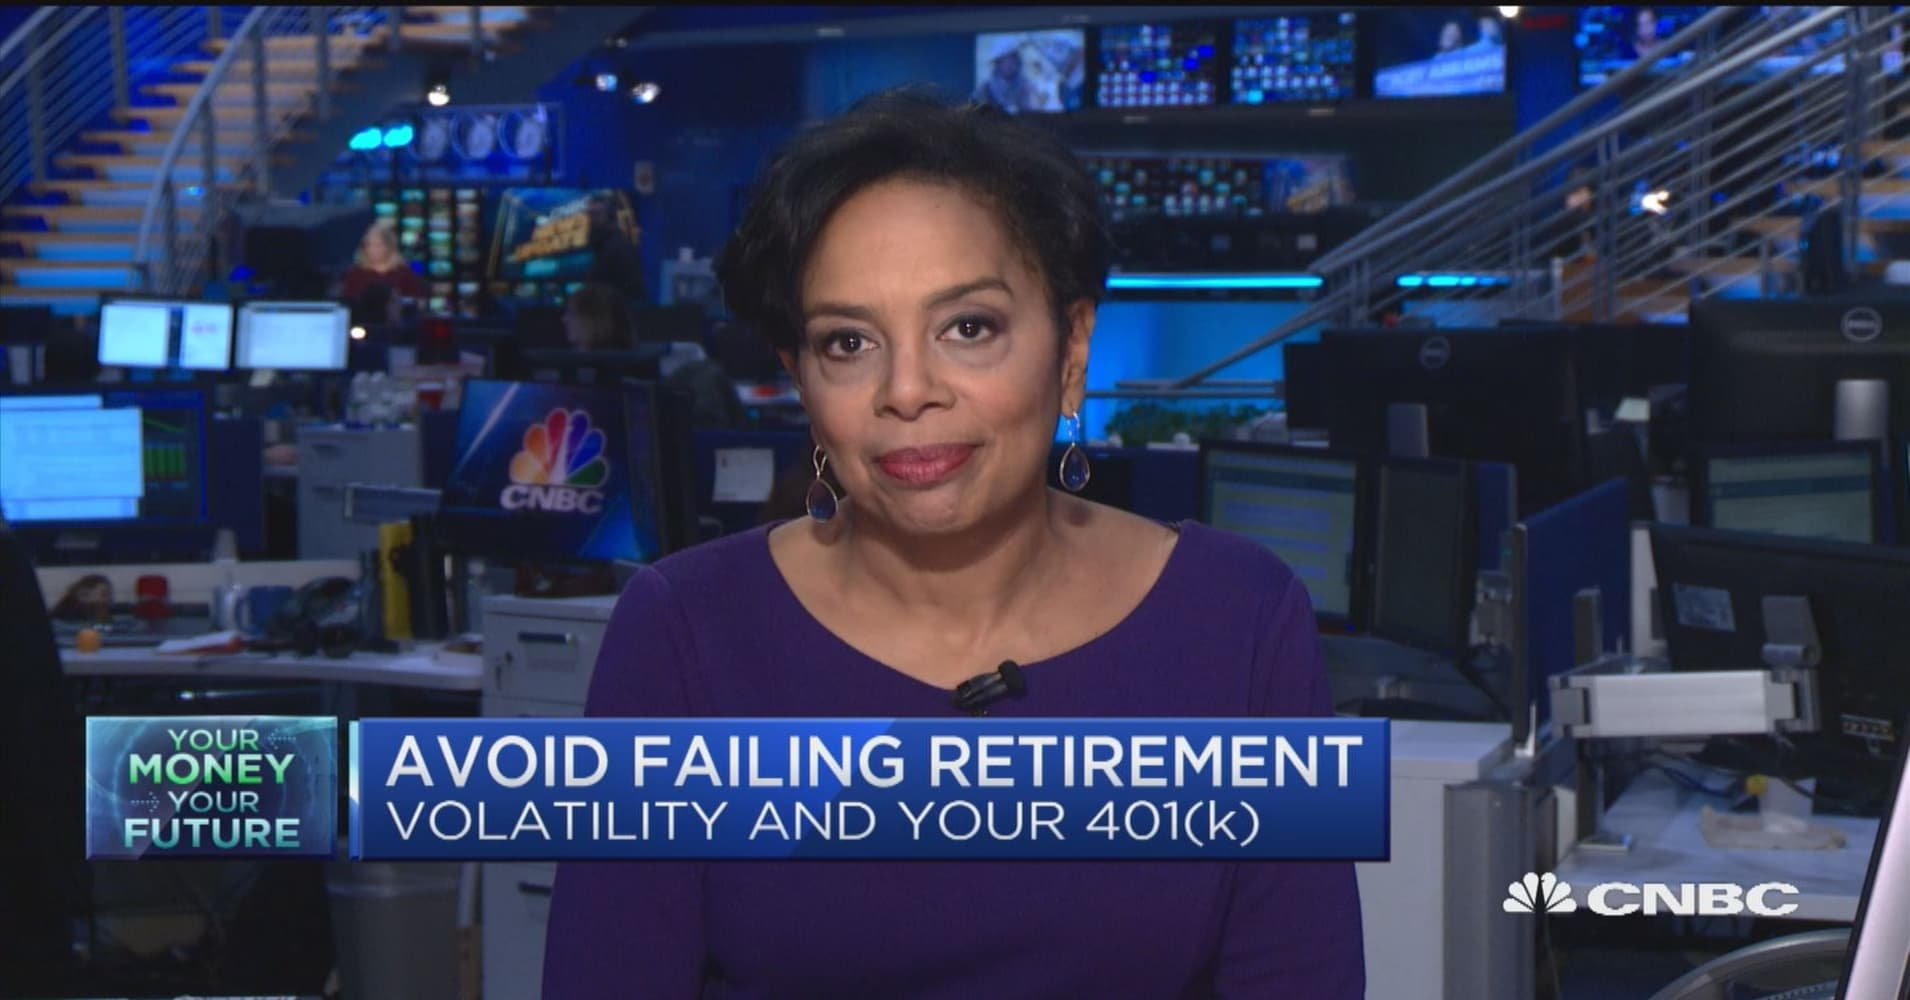 Retirement investors ramp up trading in midst of big market swings, but experts warn against emotional decisions